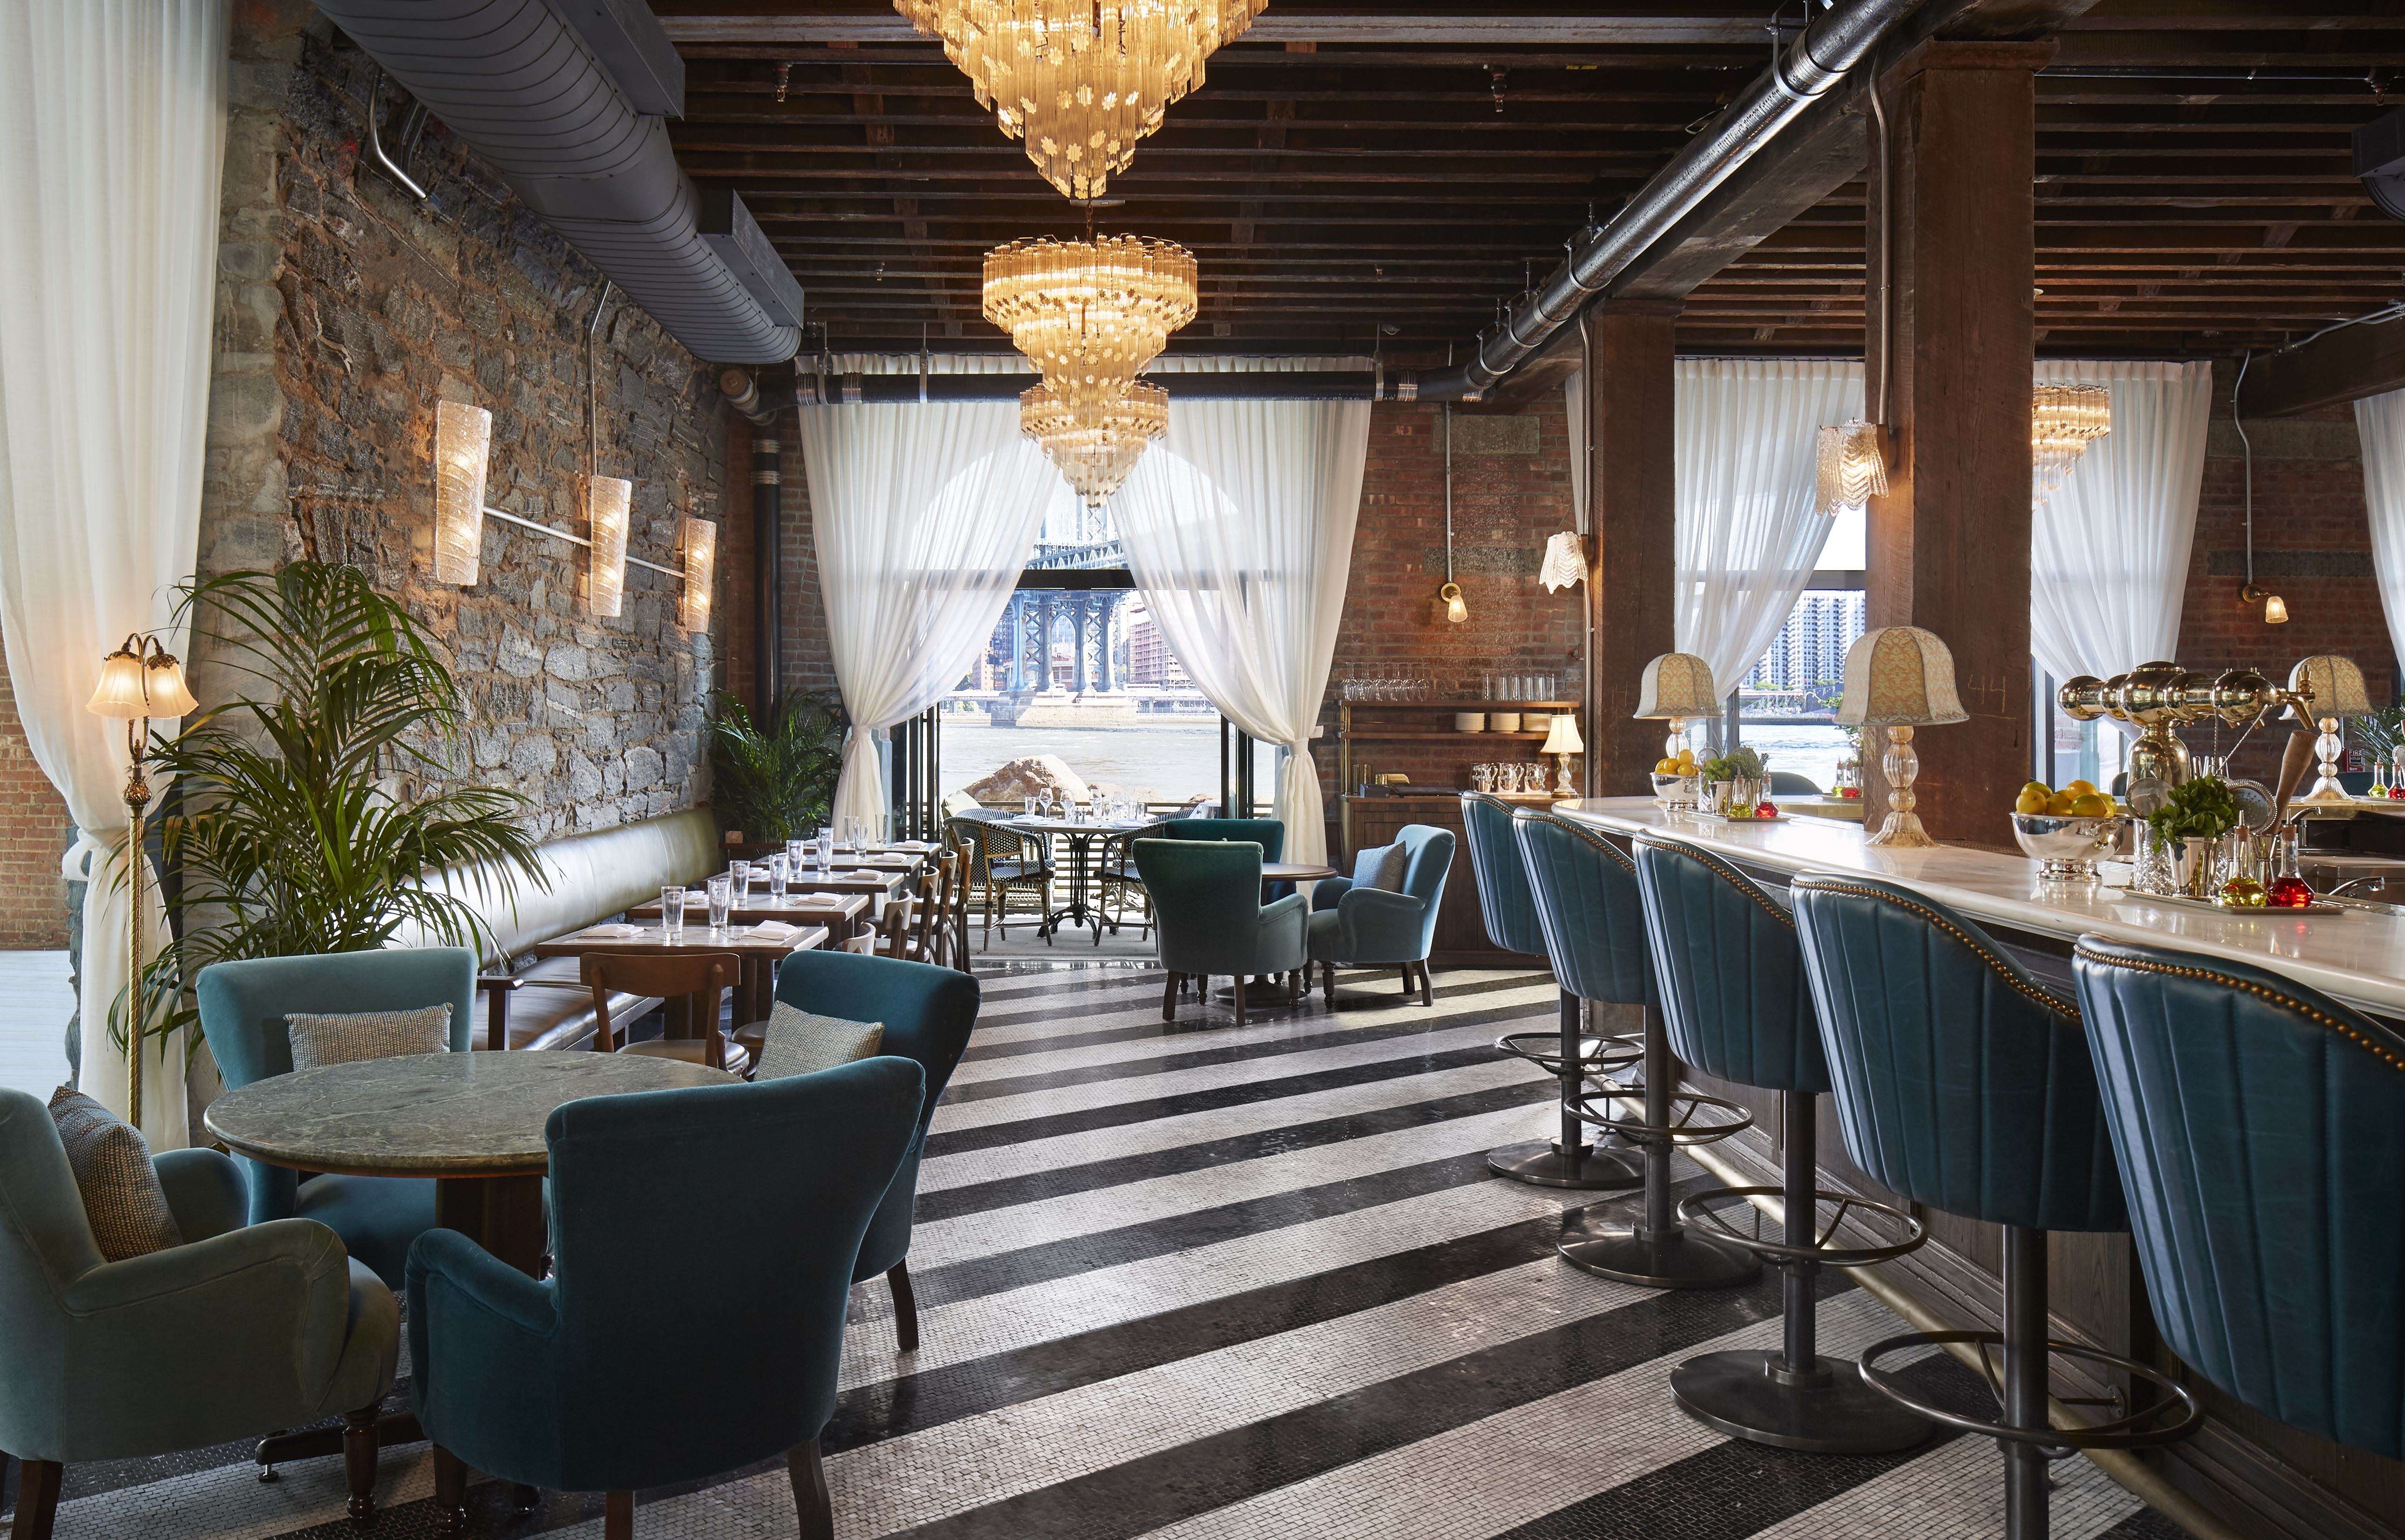 Where To Eat In Dumbo And Brooklyn Heights New York The Infatuation